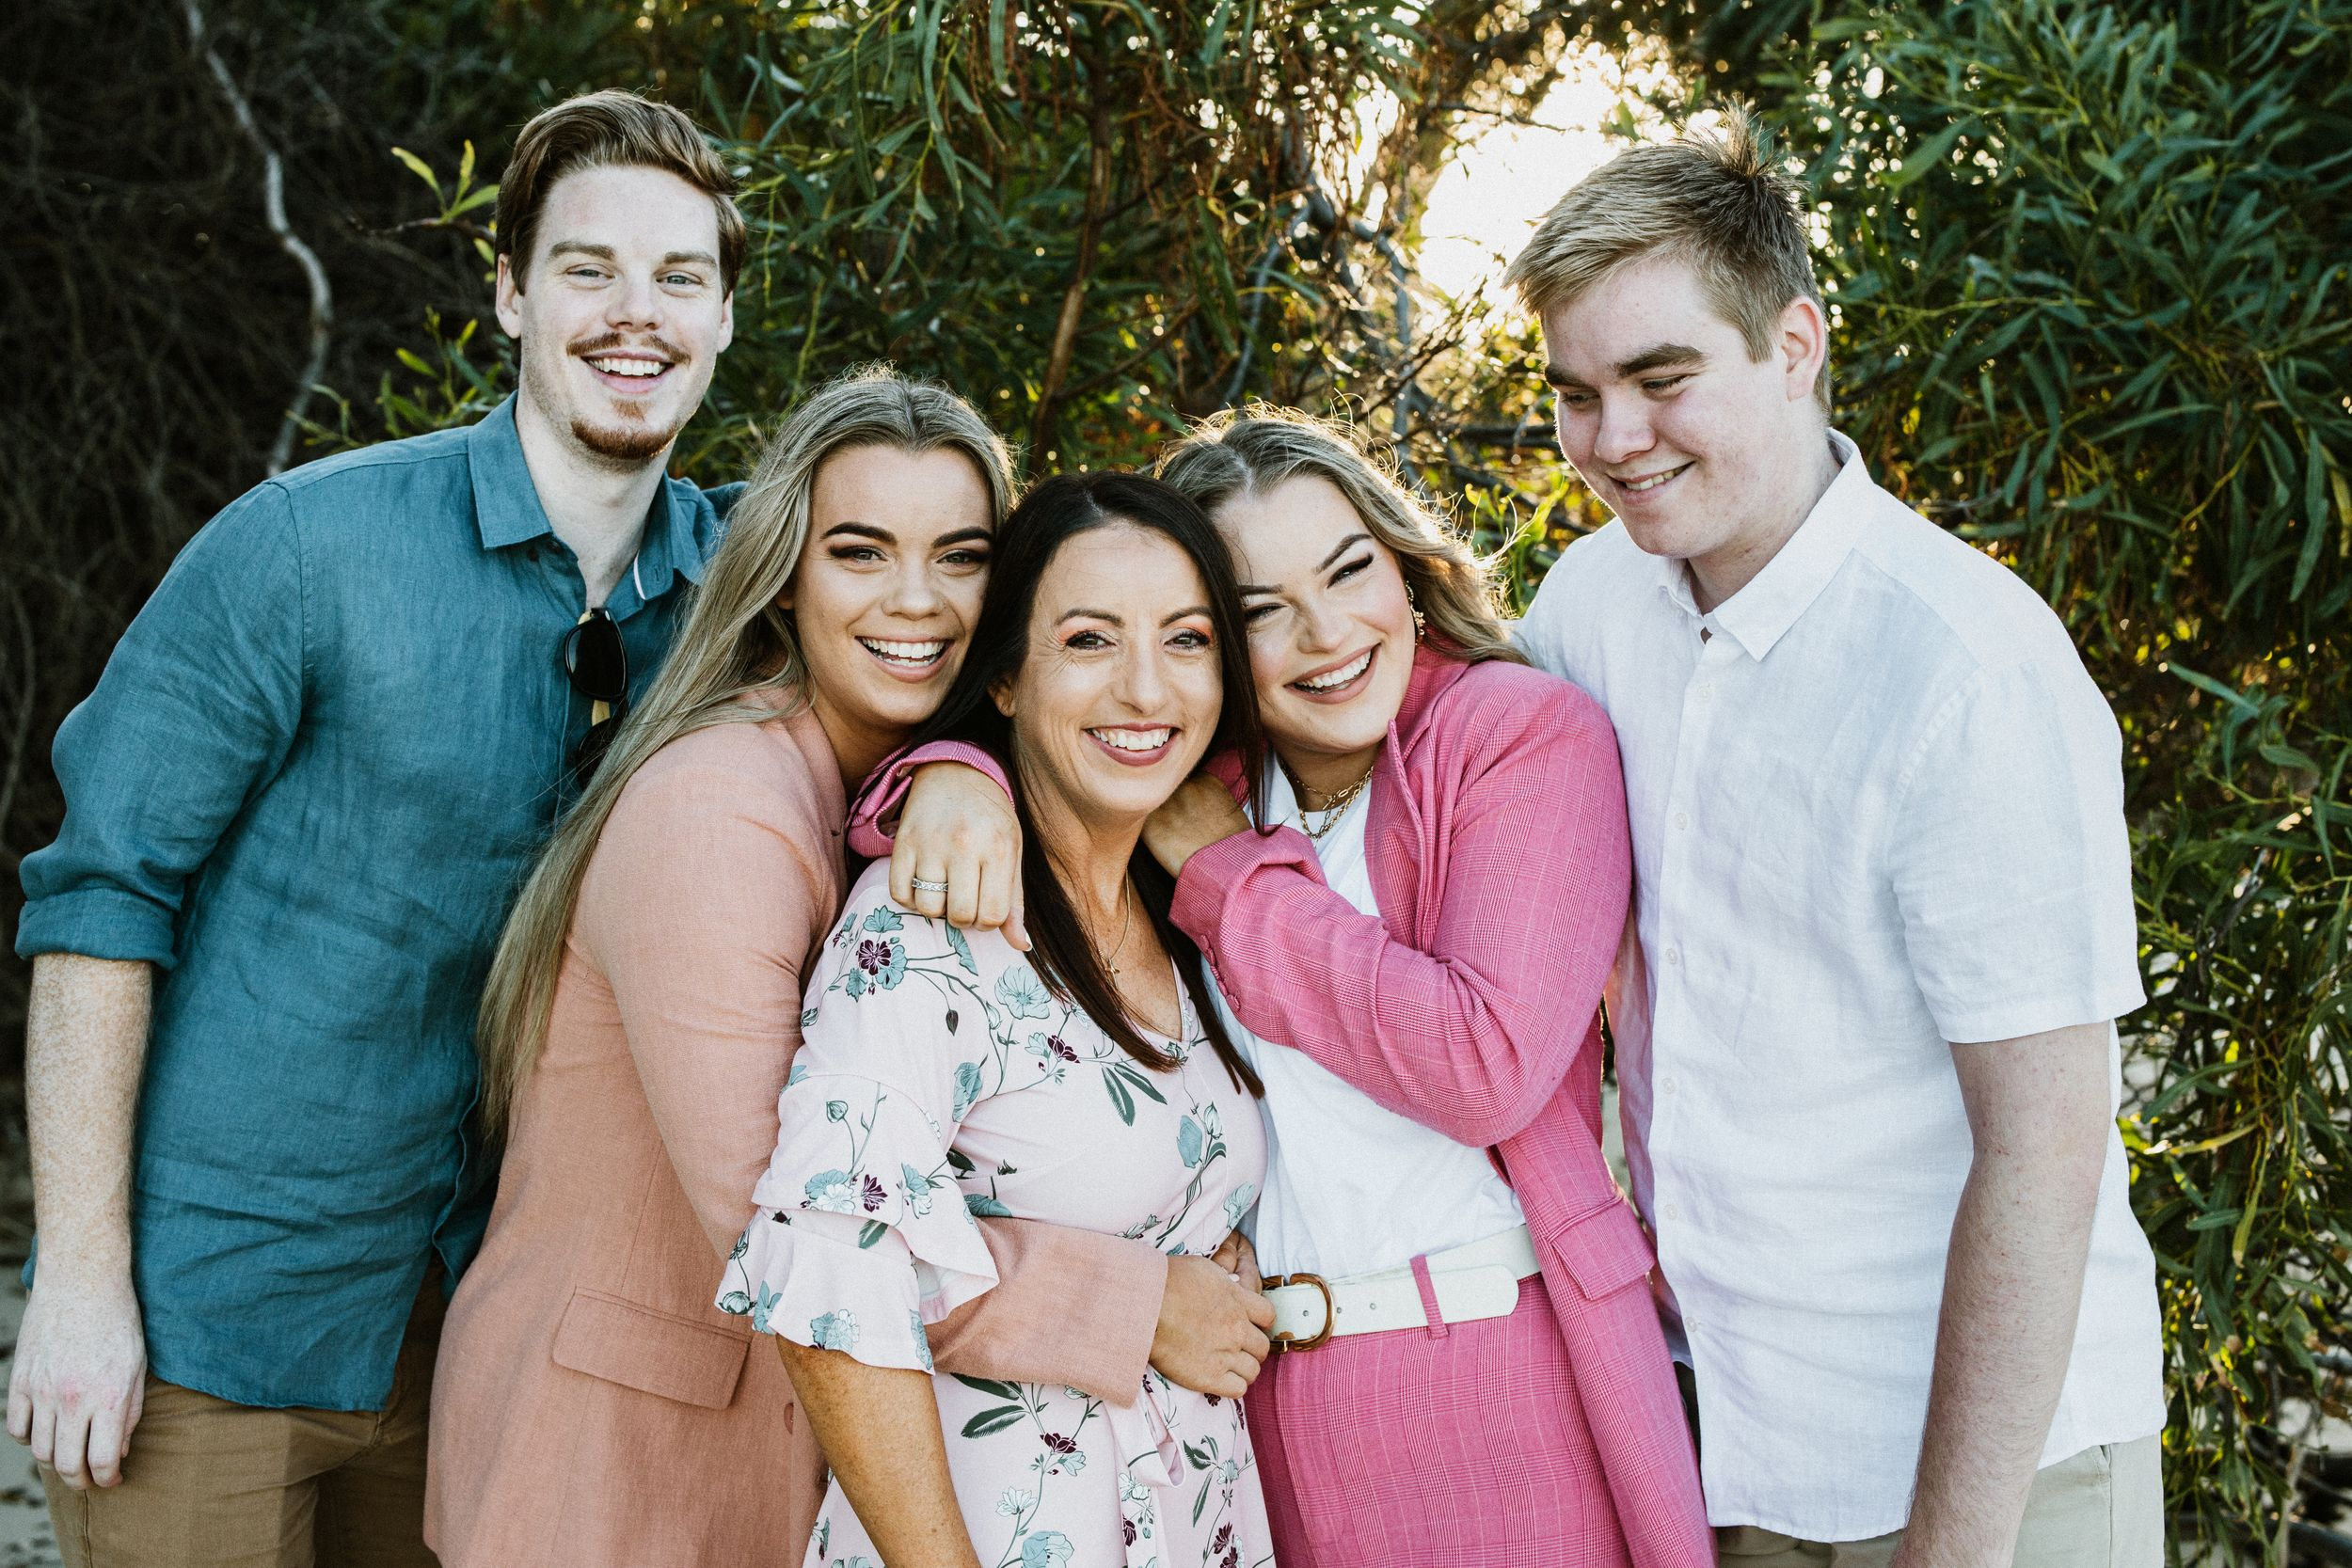 Extended Family Outdoors Natural Smiling Happy Relaxed Family Photographer Cronulla Manly Balmain Sydney Hannah